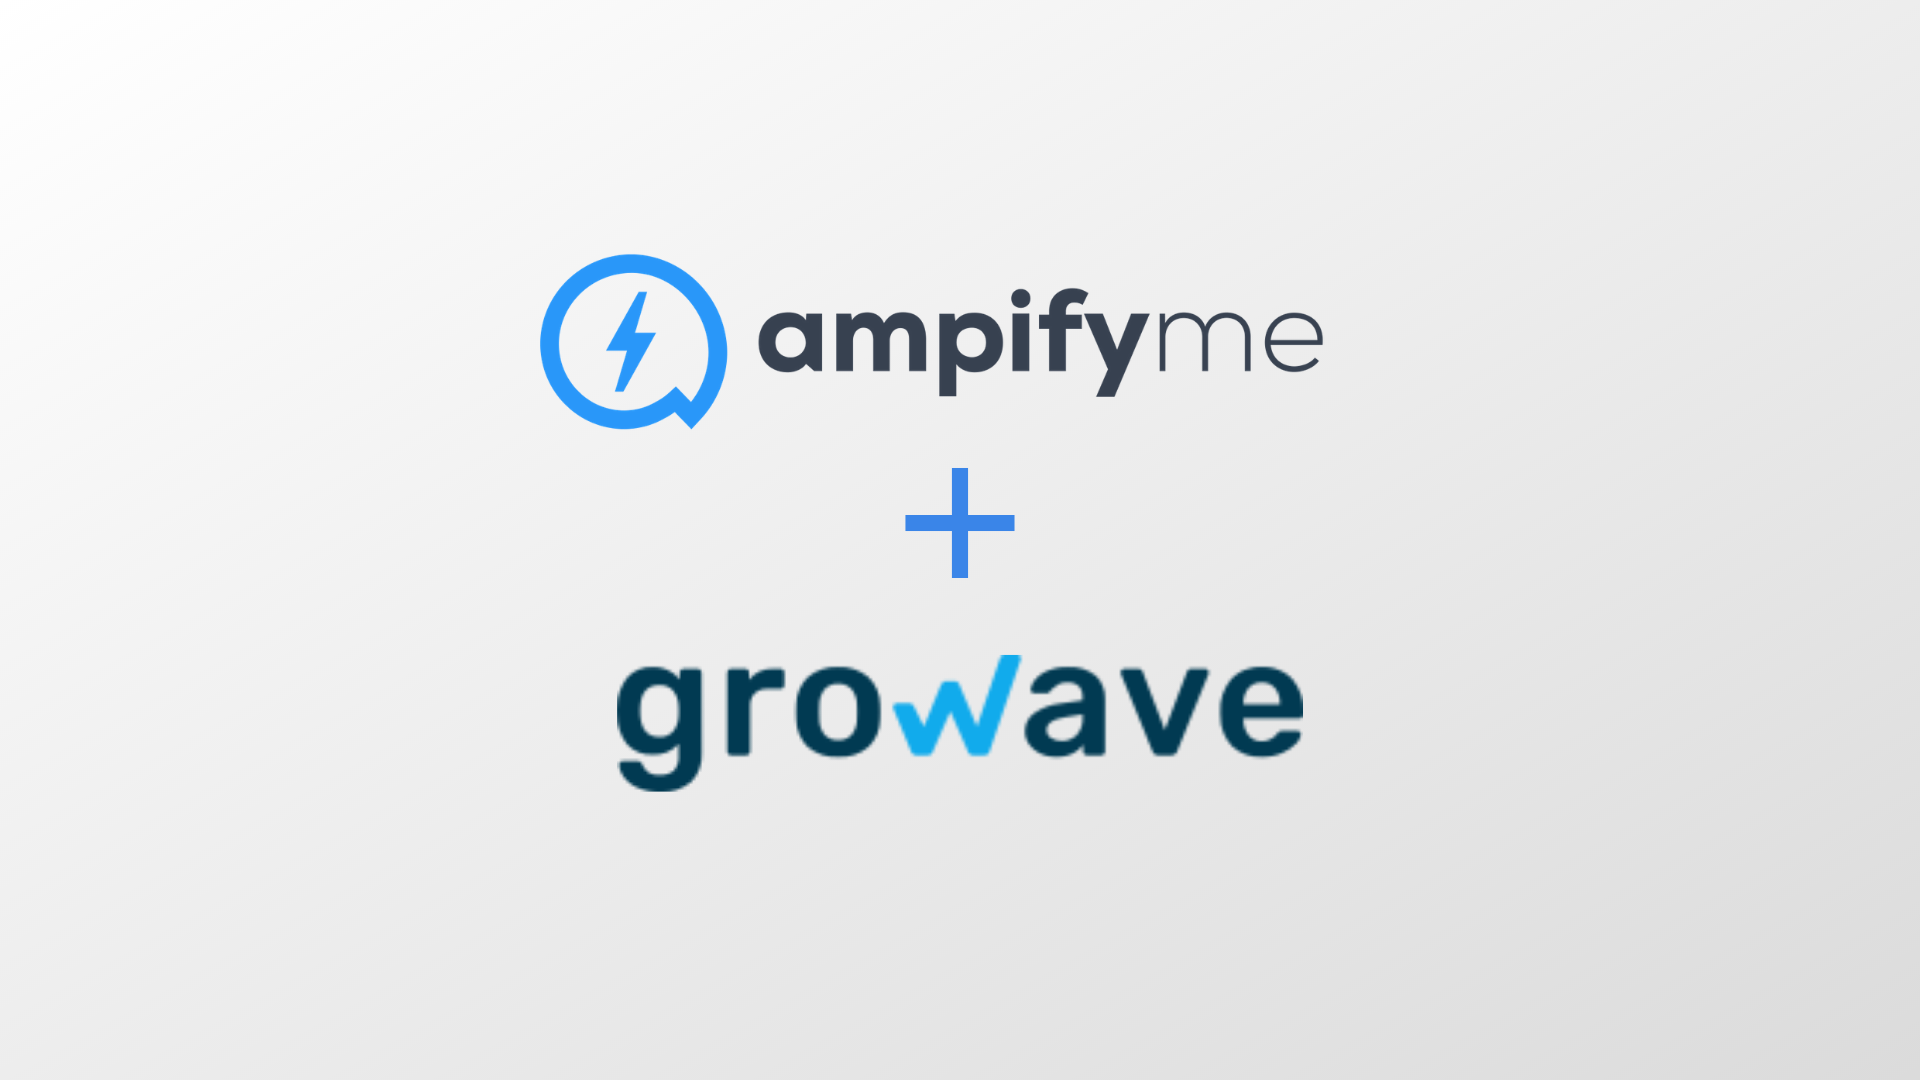 ampify me growave integration